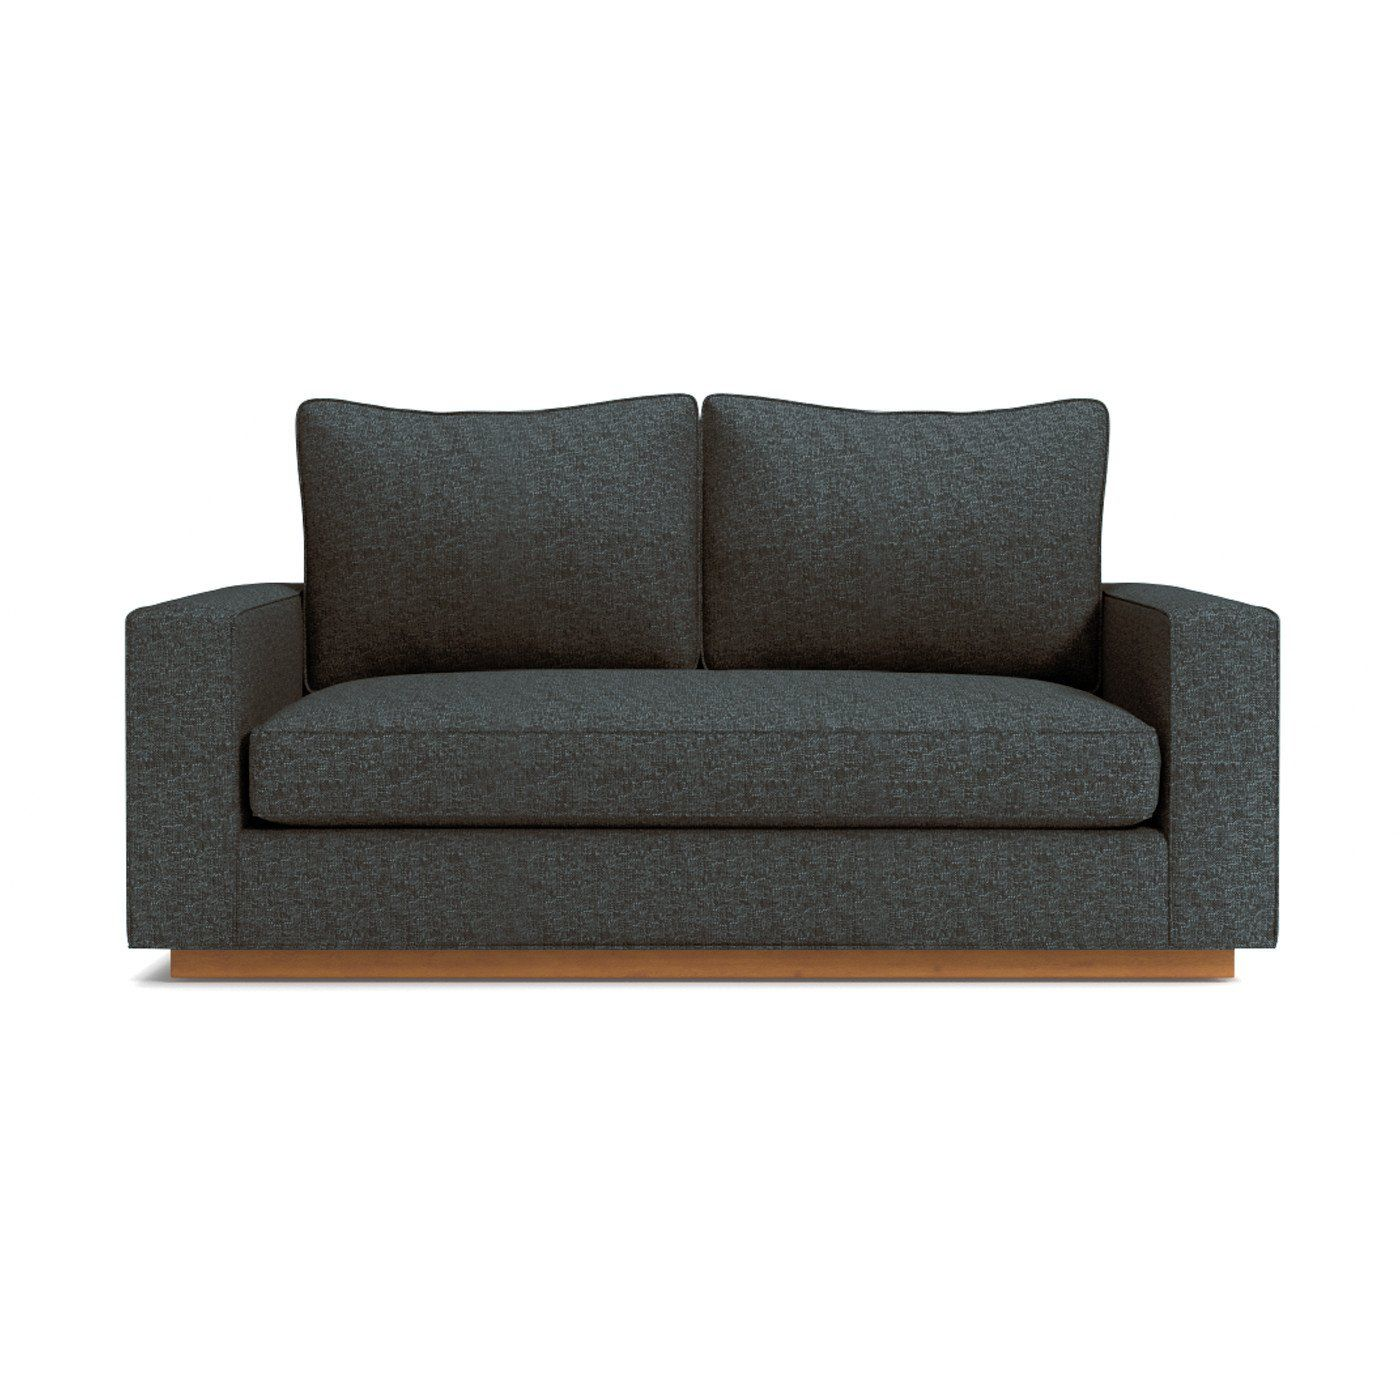 Harper Apartment Size Sofa From Kyle Schuneman CHOICE OF